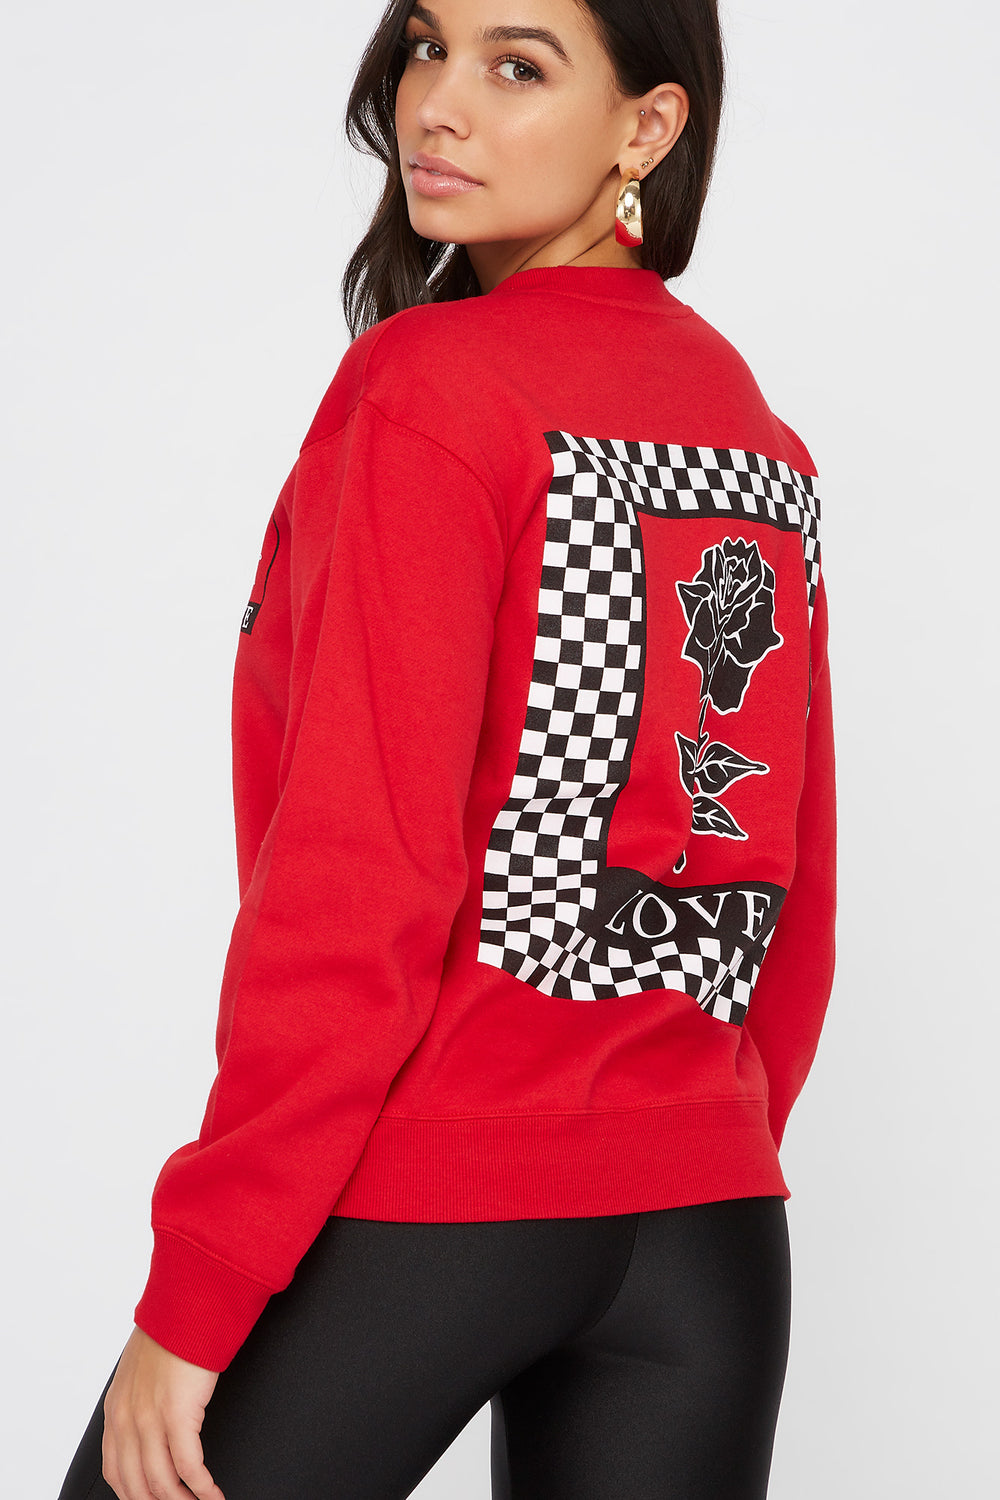 Love Rose Crew Neck Sweatshirt Red